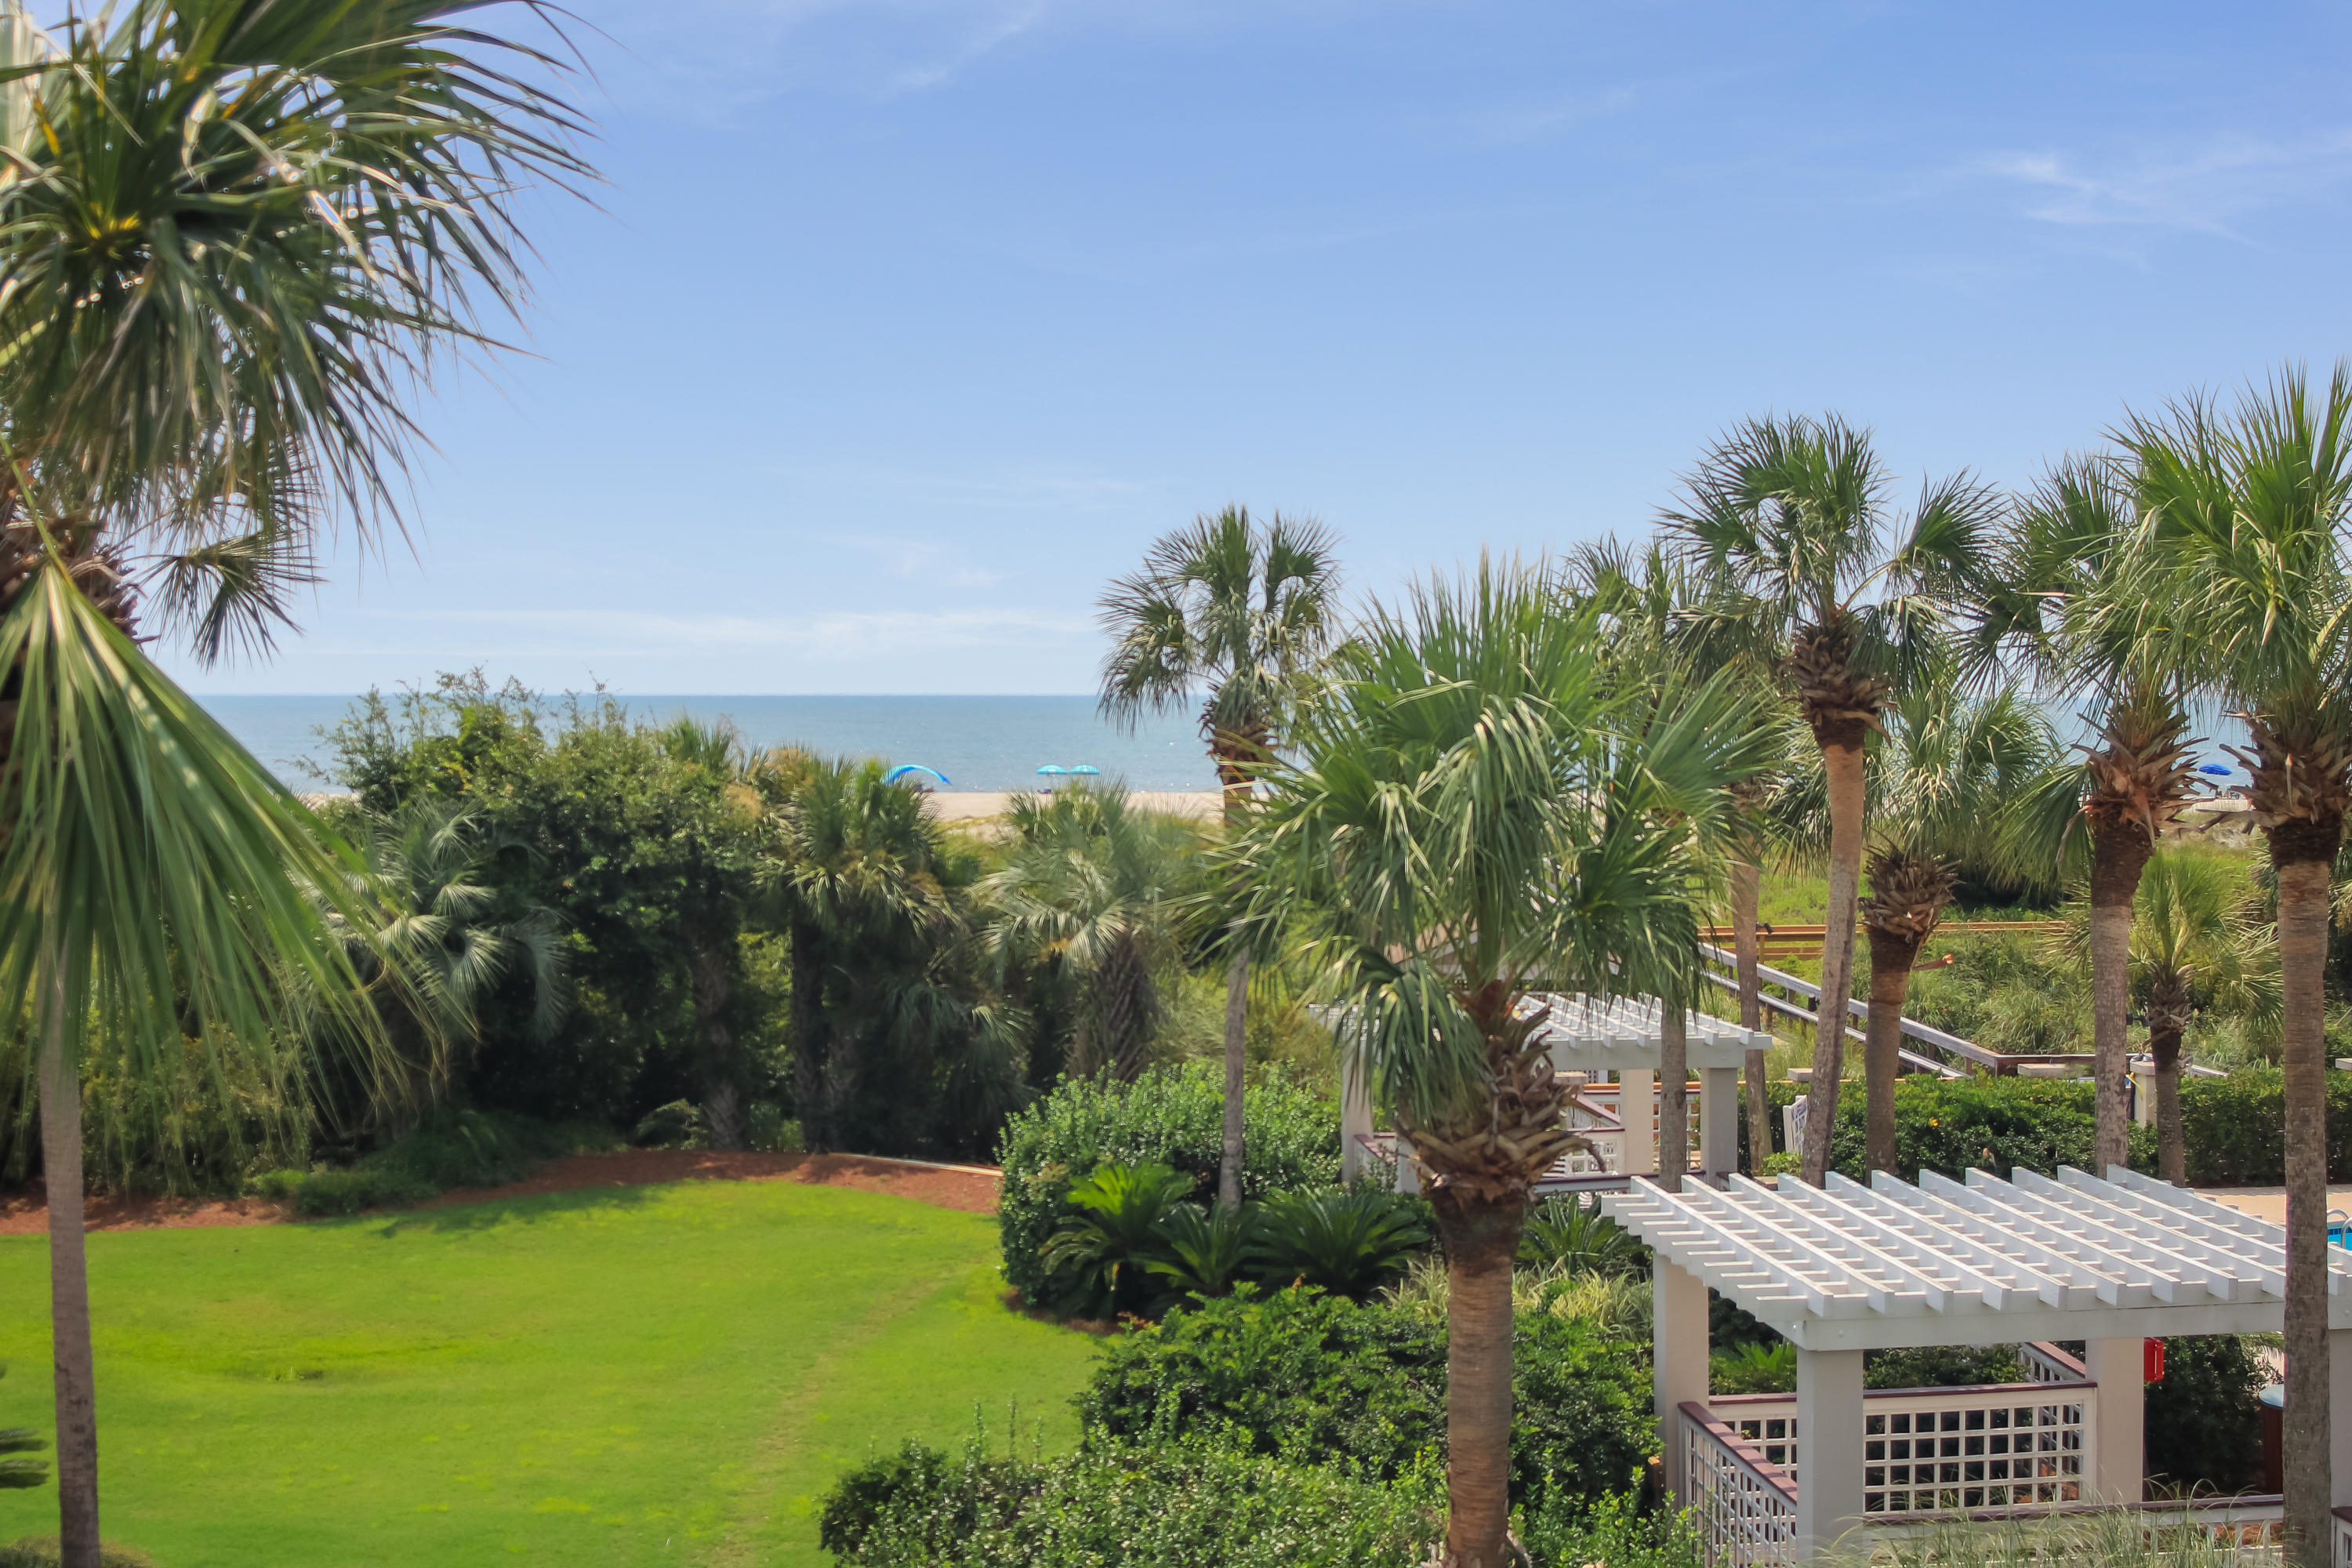 51 Beach Club Villas Isle Of Palms, SC 29451